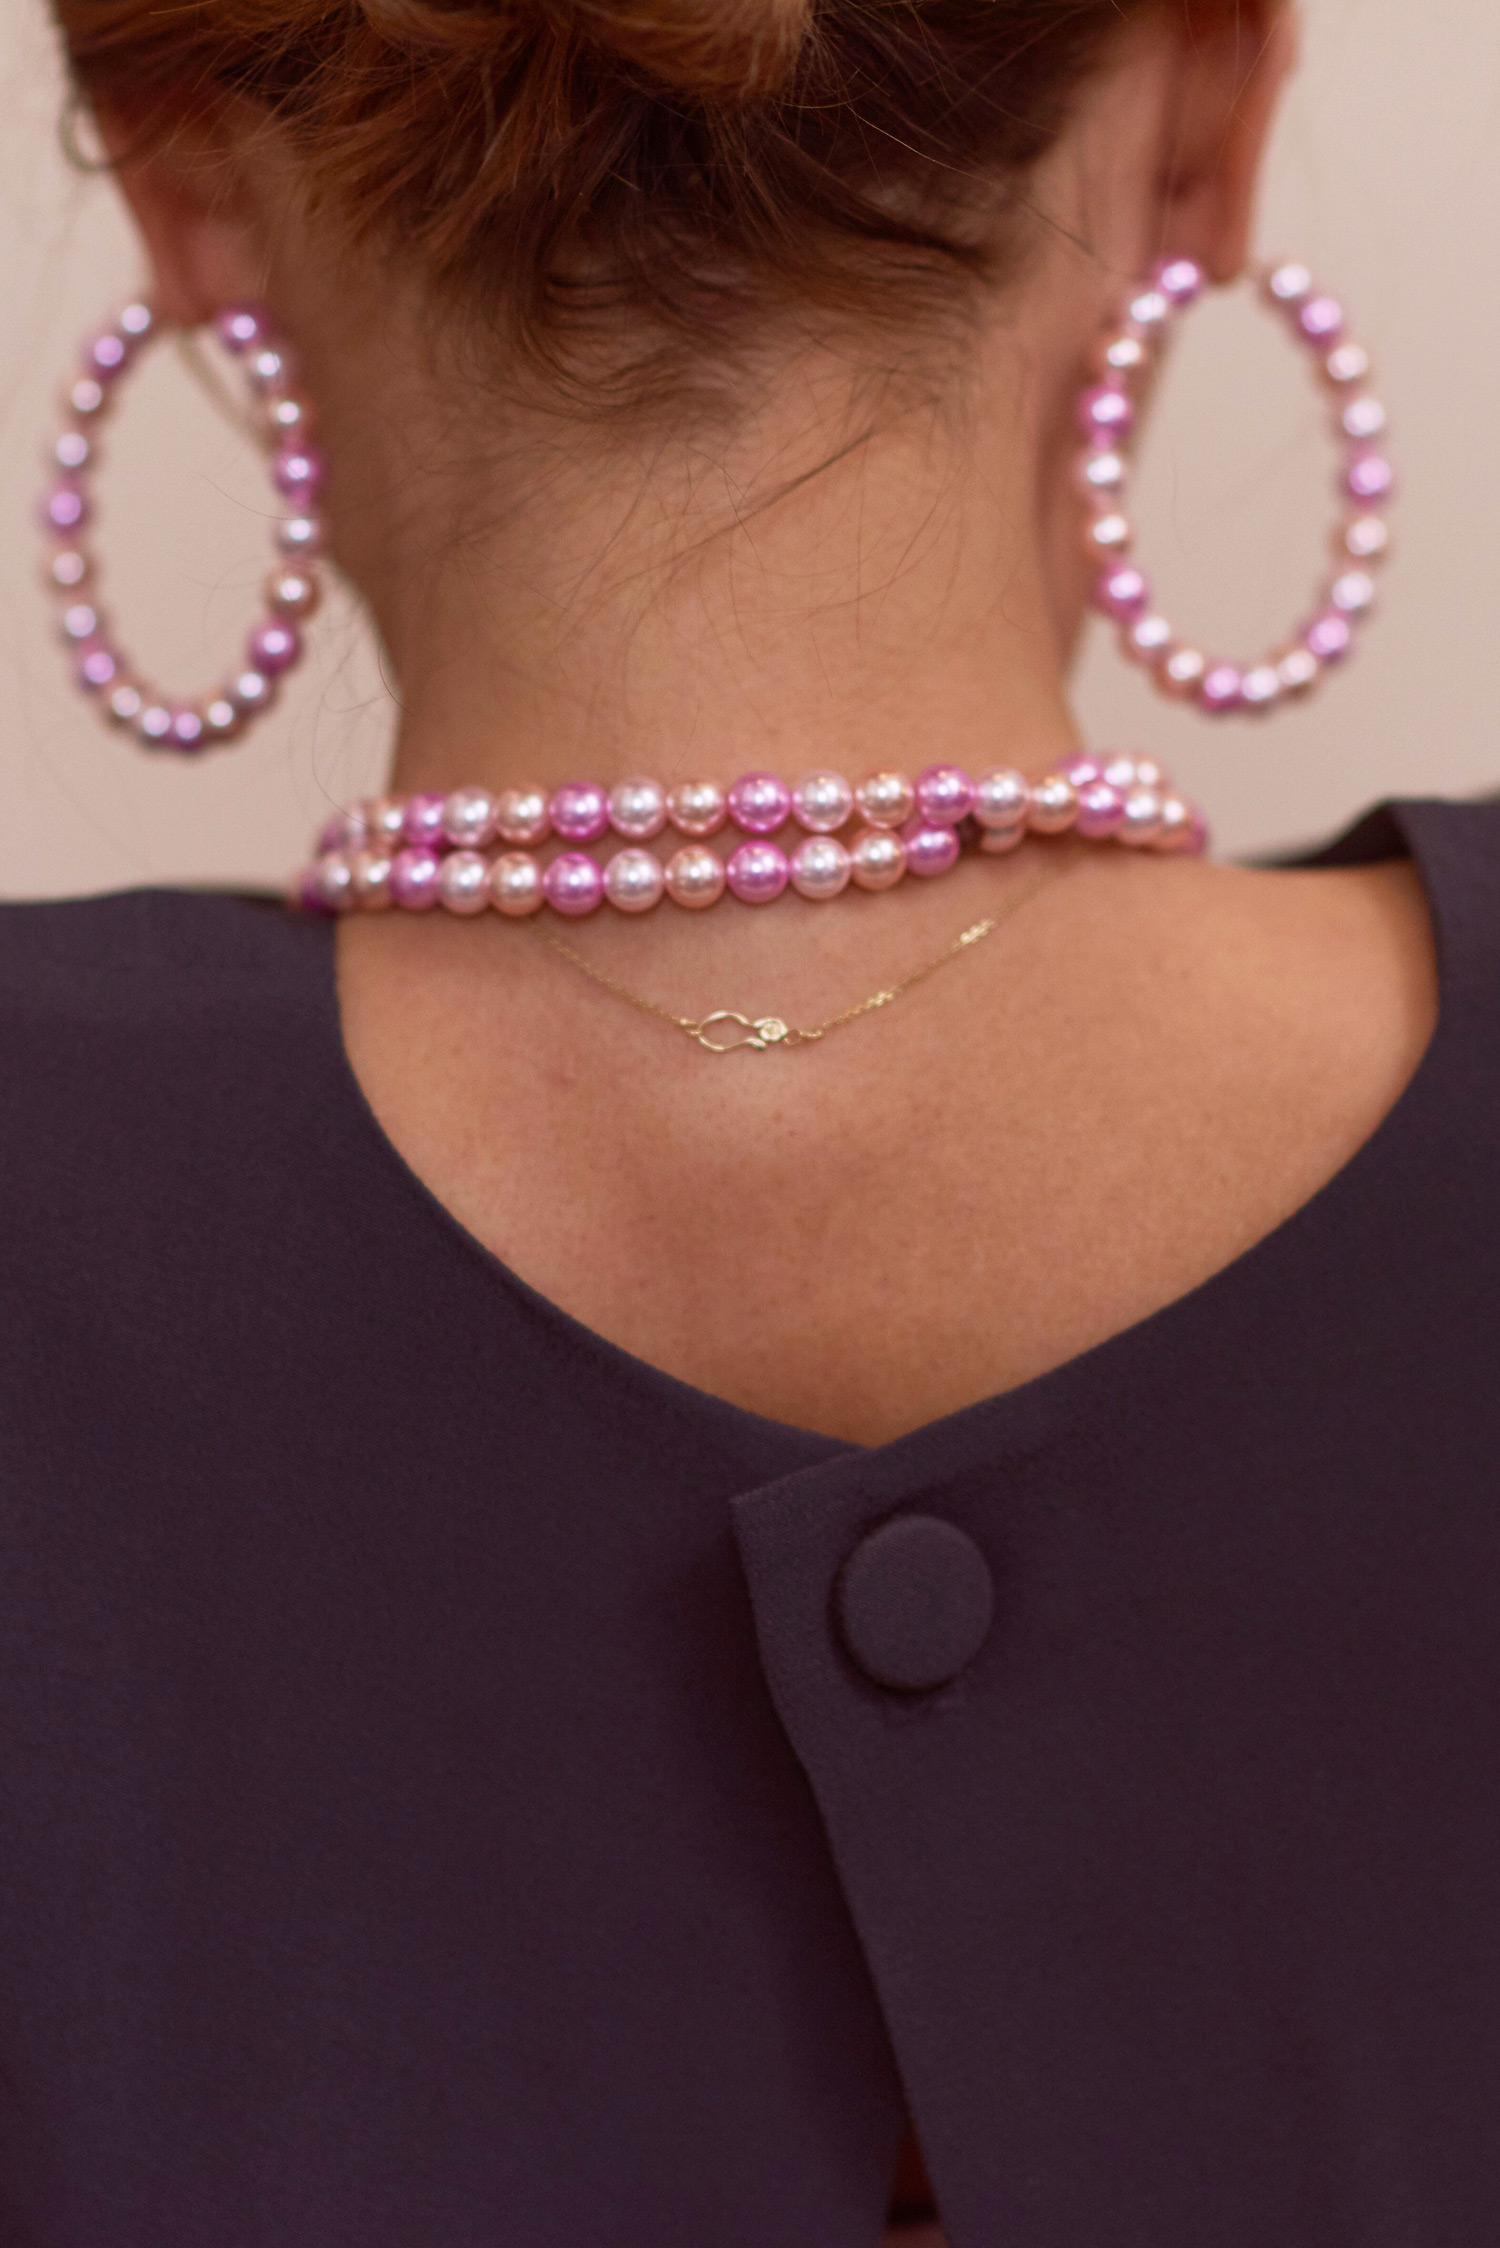 Rosa Macher Top 001 in Charcoal and pearl necklace and hoops in multi